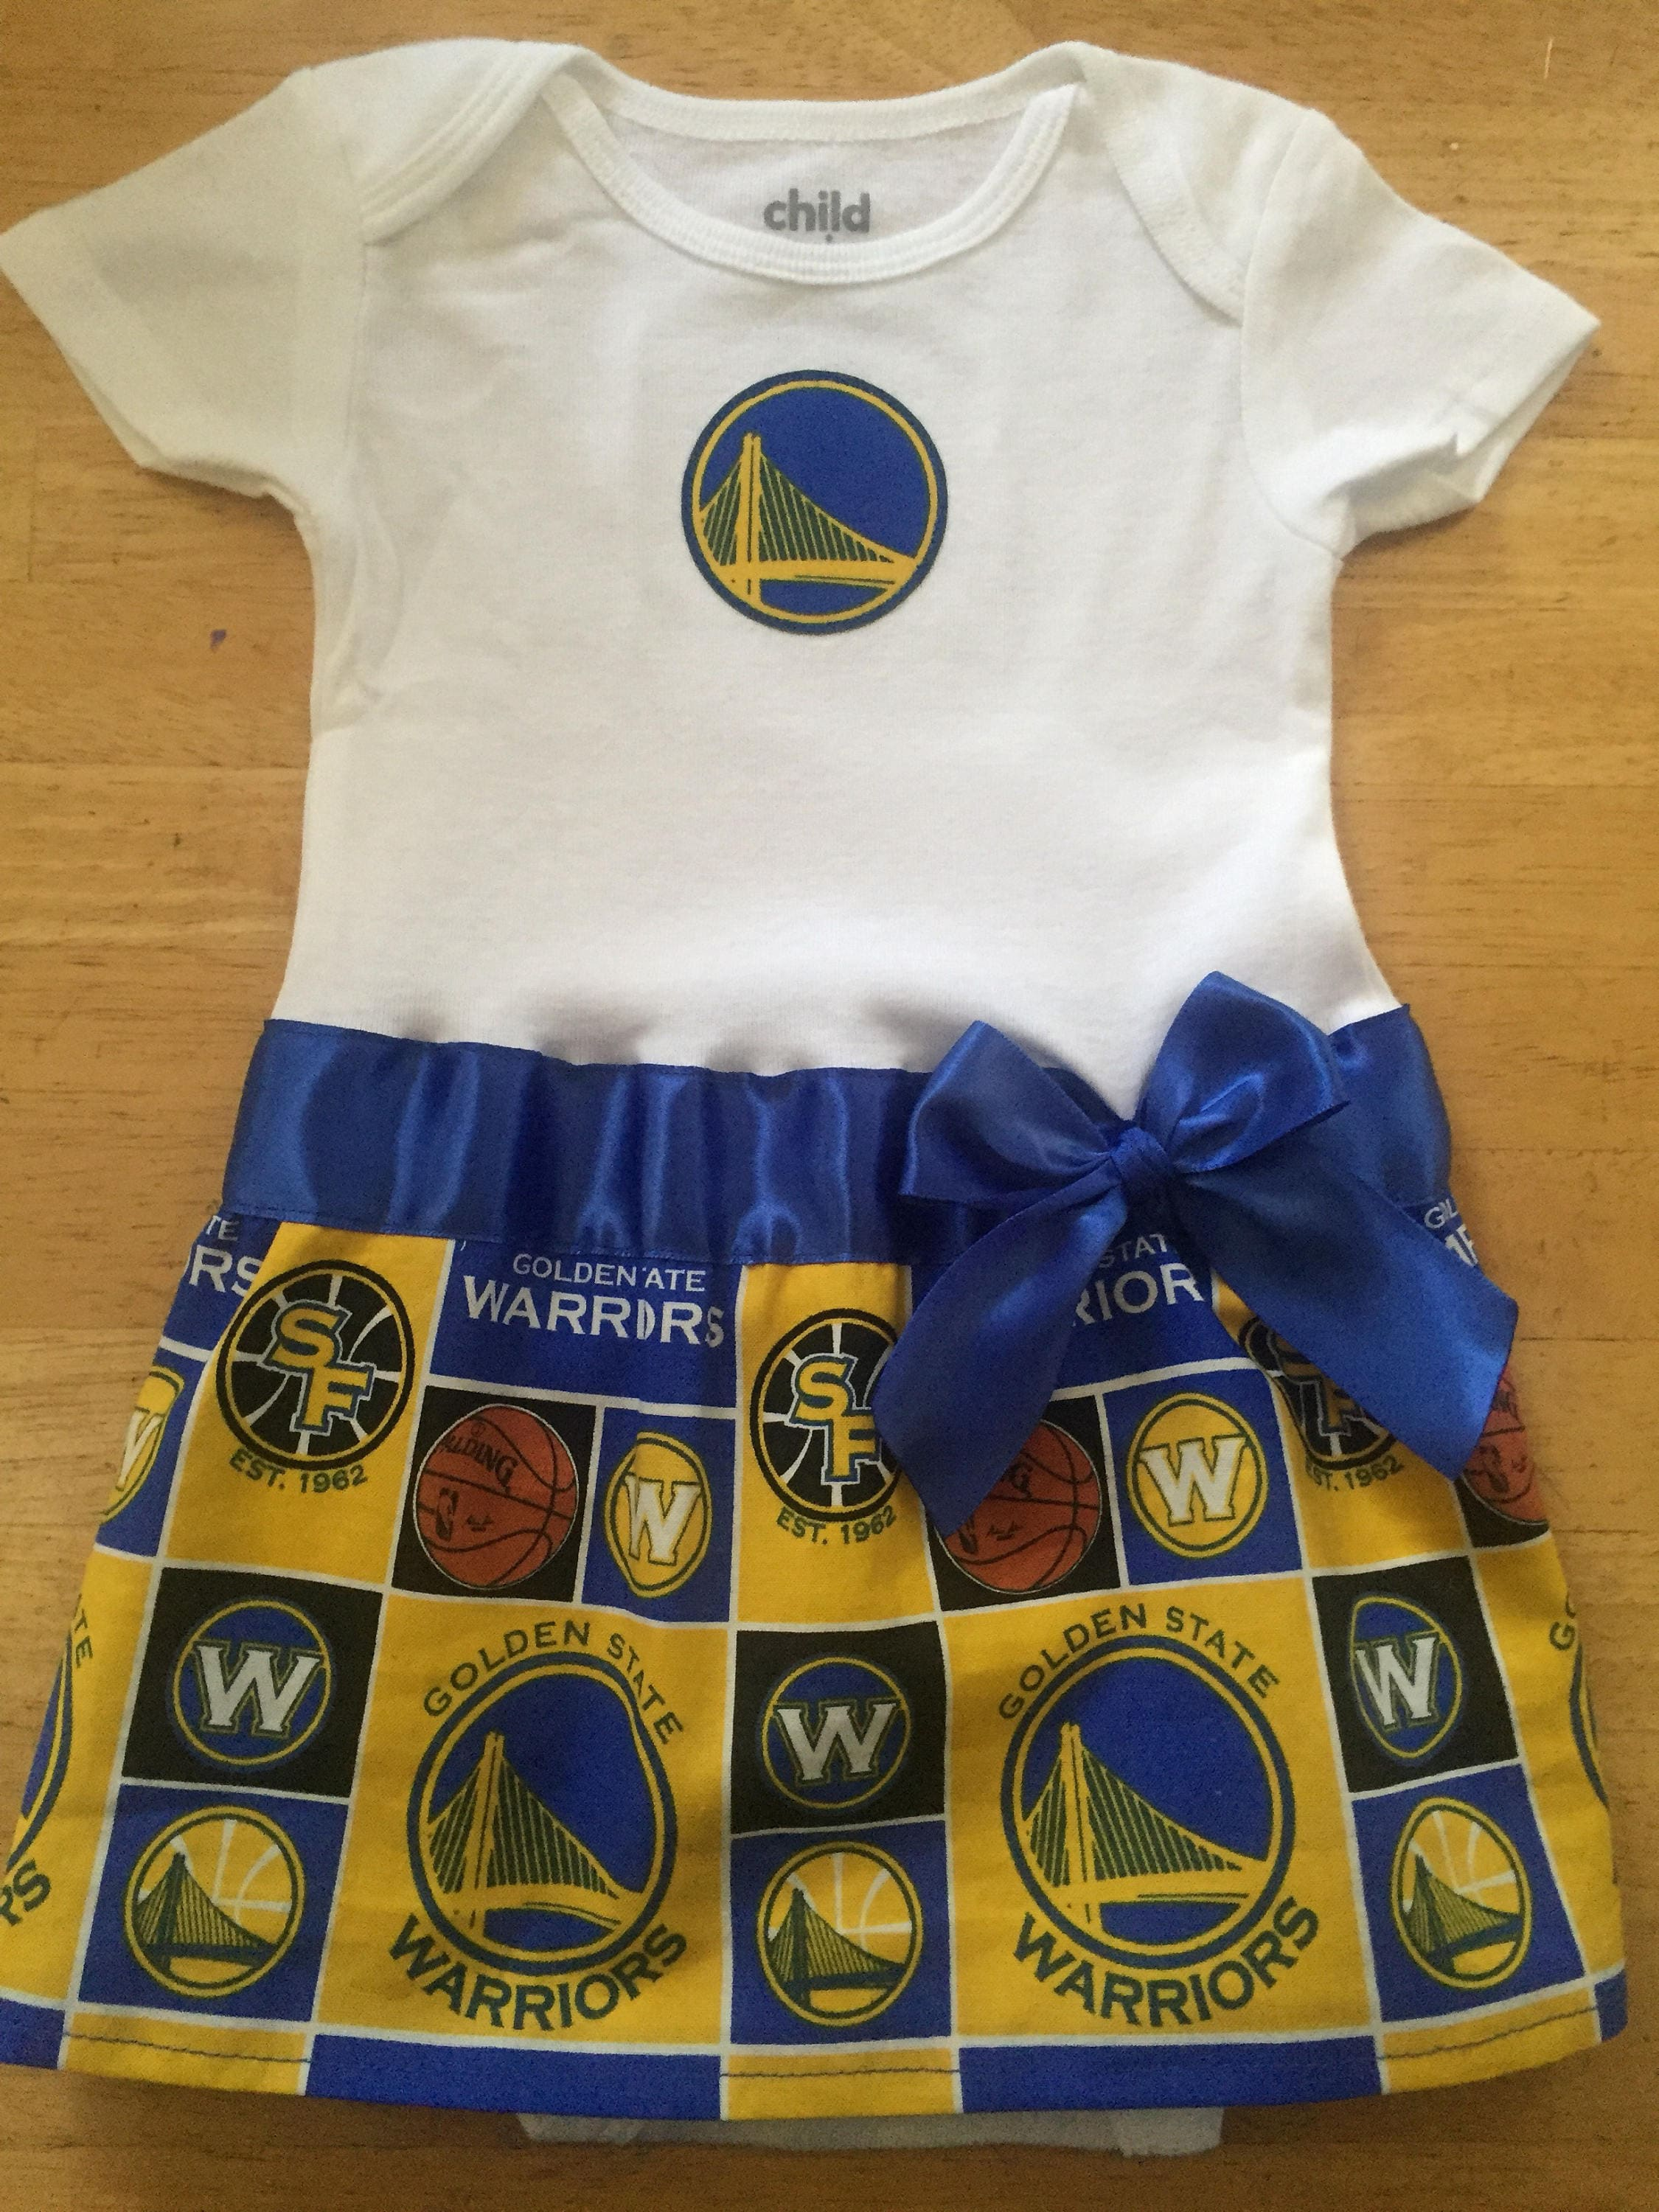 Golden State Warriors inspired baby girl outfit